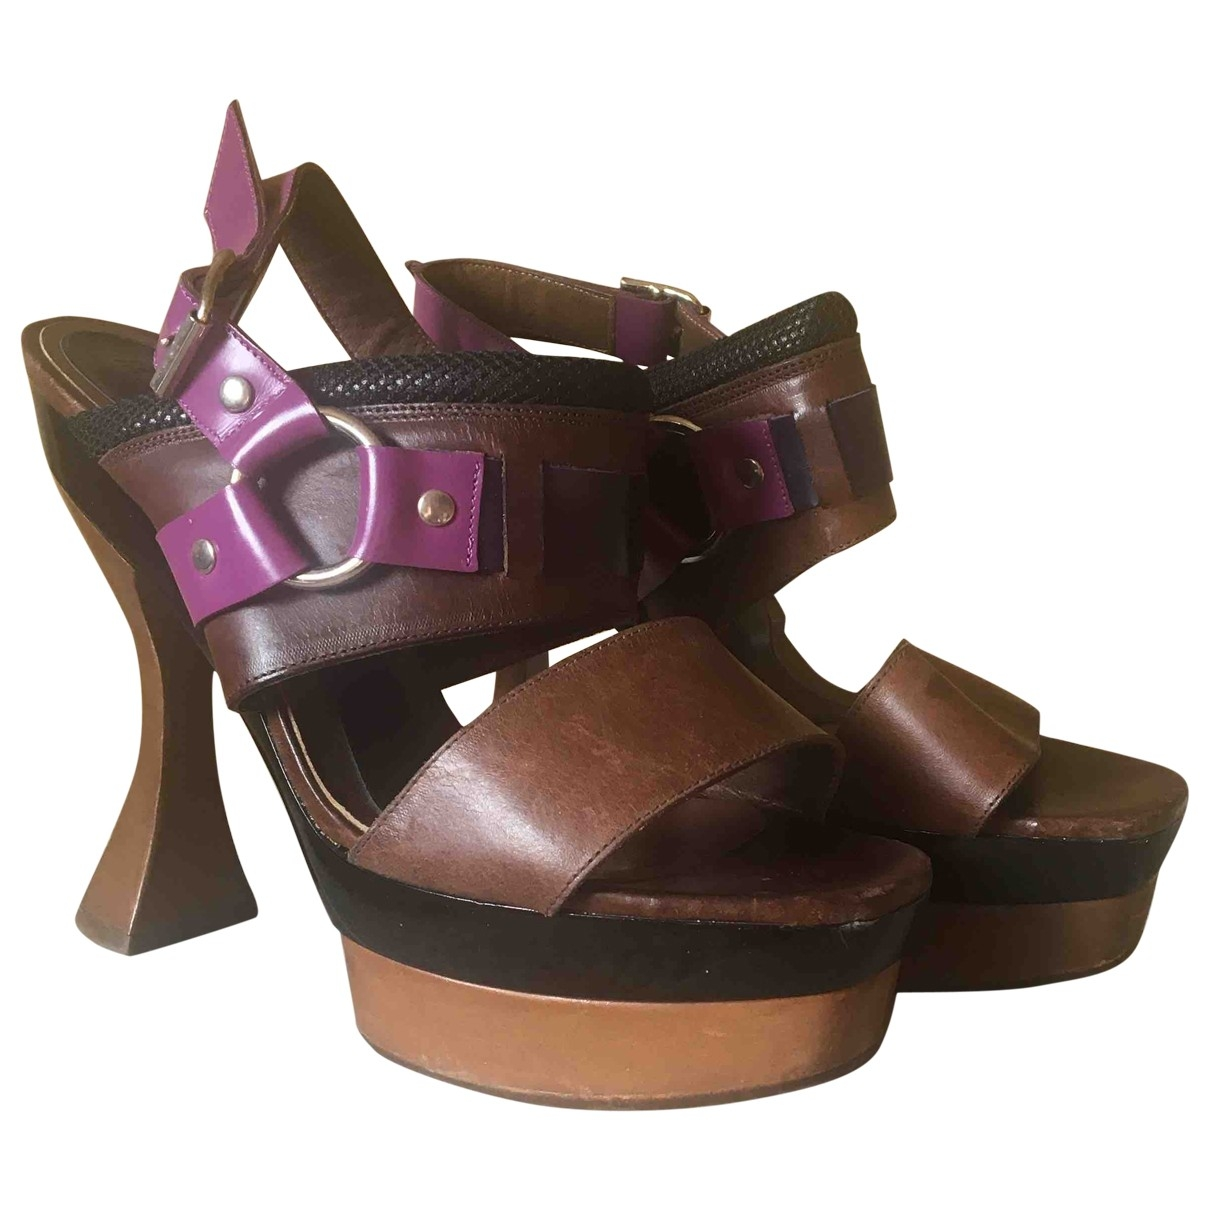 Marni \N Multicolour Leather Sandals for Women 39 EU